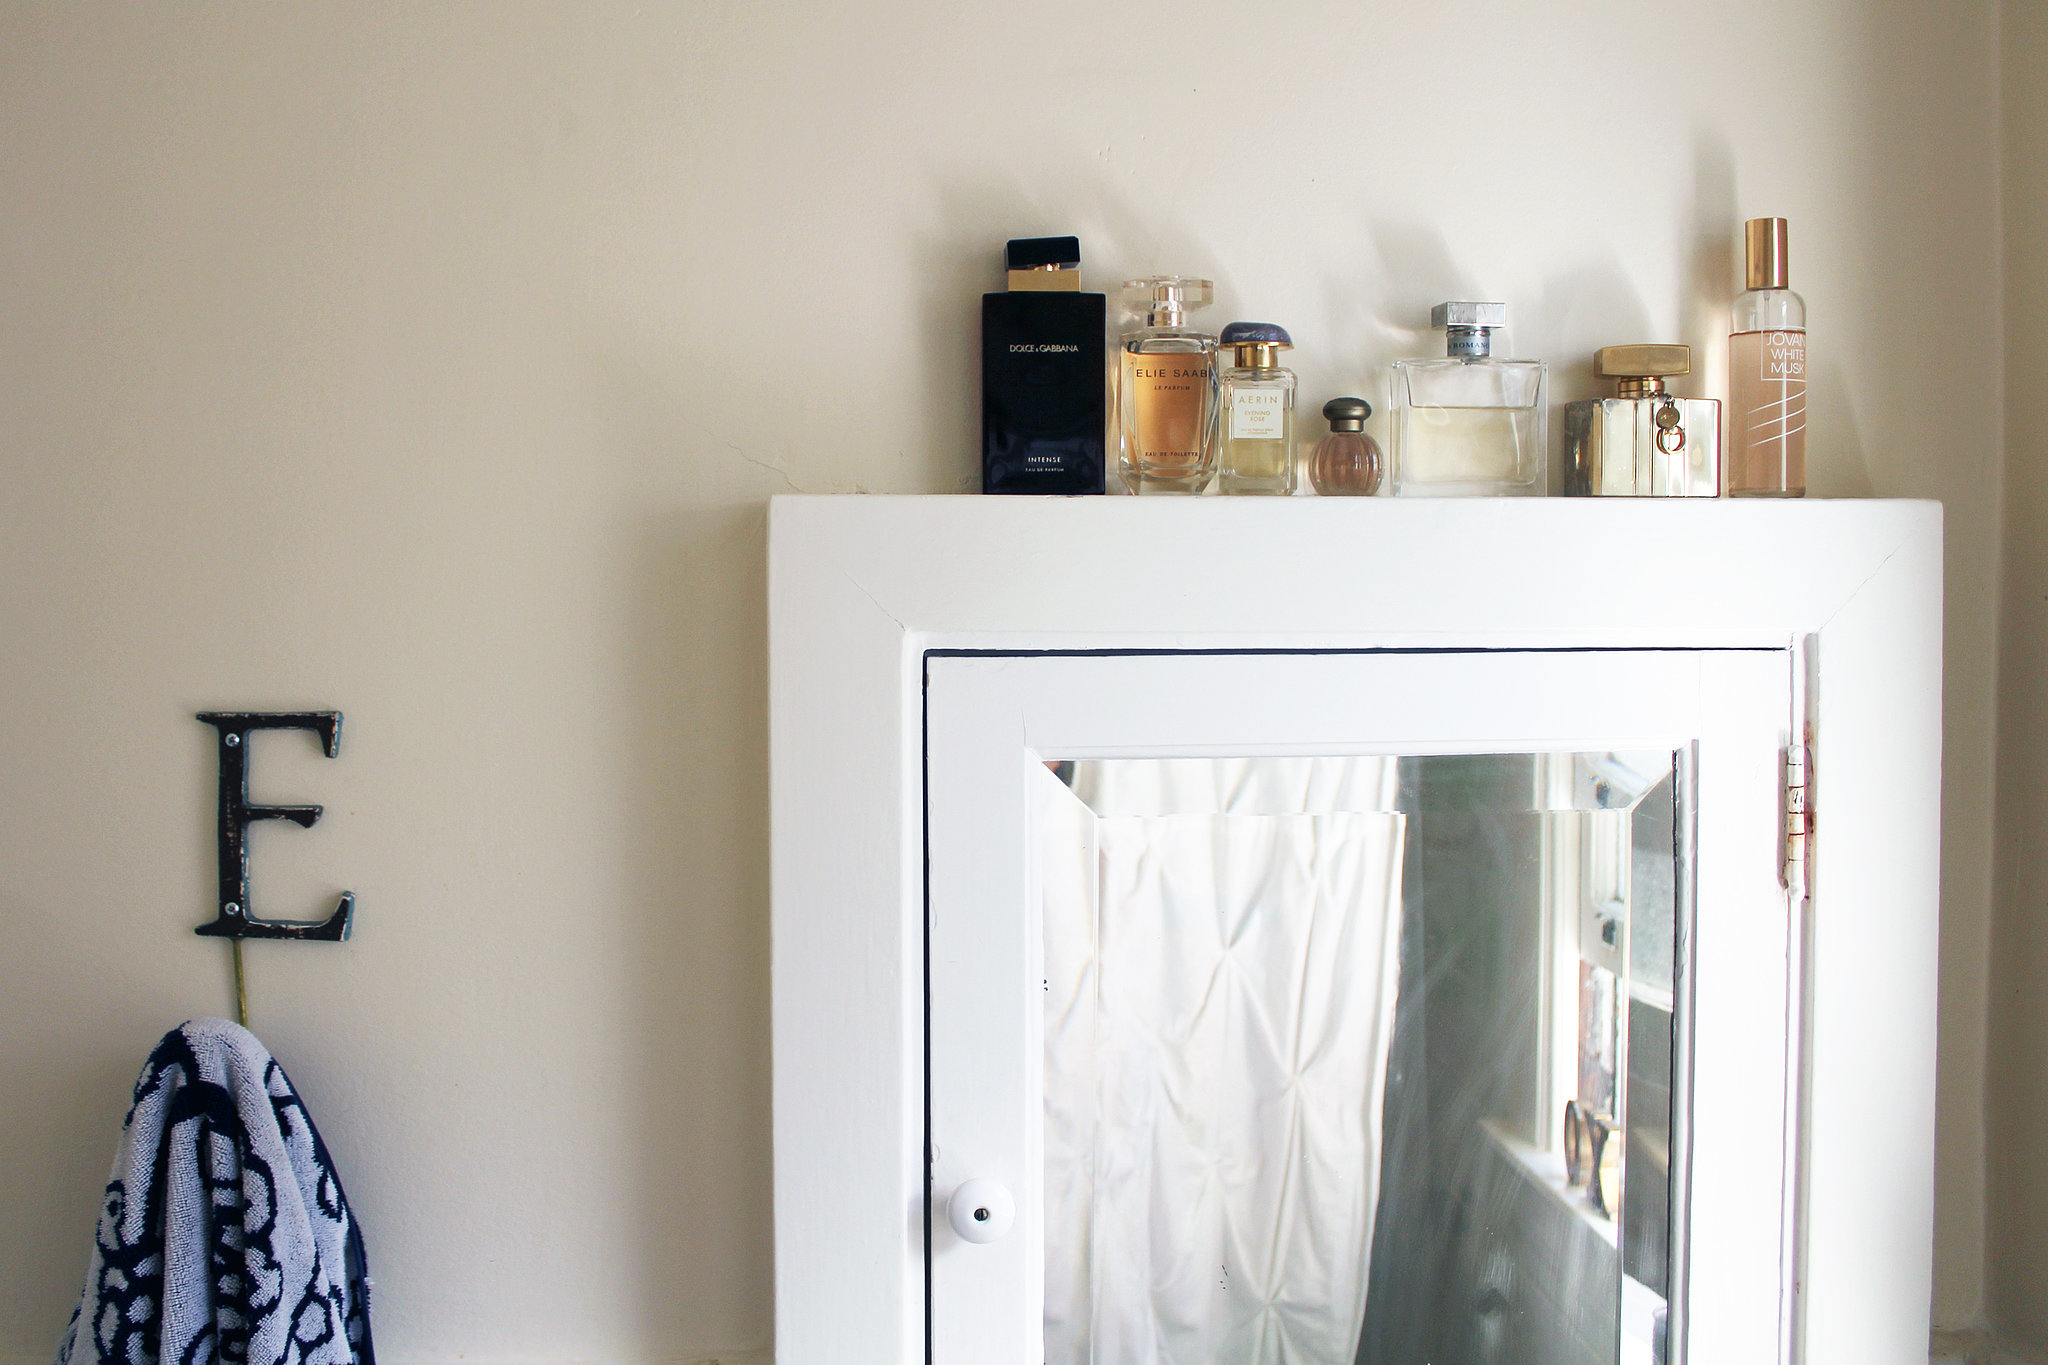 As for the bathroom, decor comes in the form of beautiful perfume bottles.